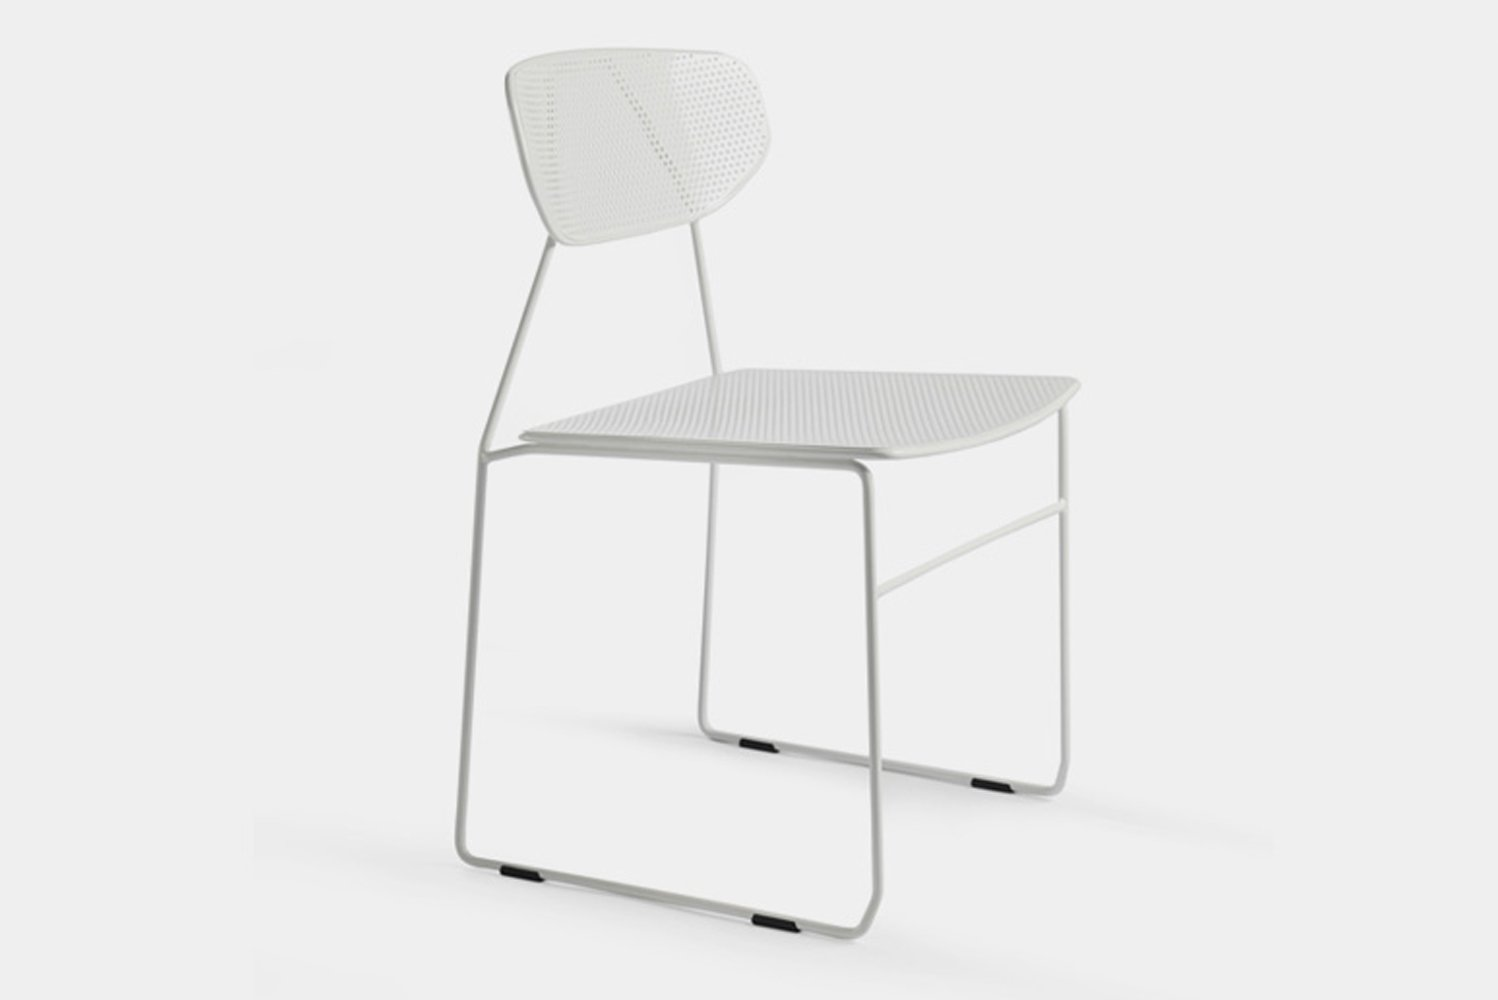 The Naked Chair is available with or without arms and in a variety of colors.